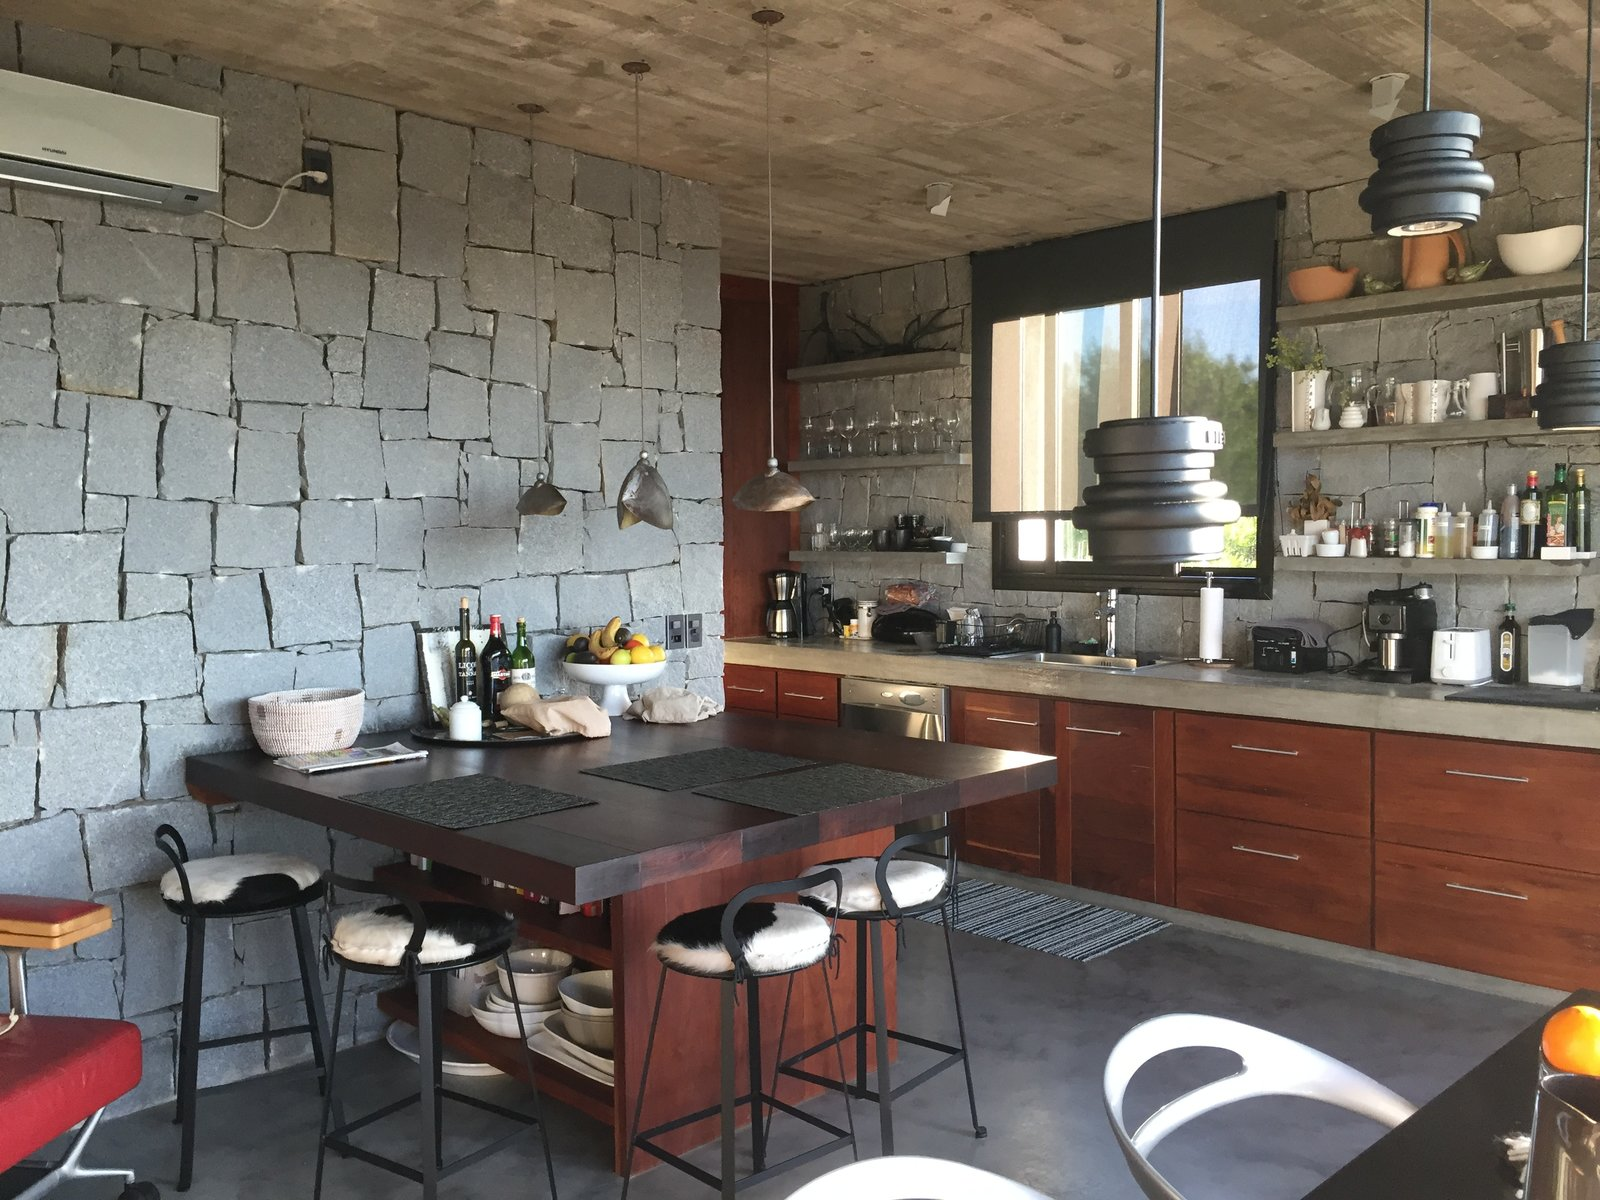 Kitchen, Wine Cooler, Microwave, Refrigerator, Accent Lighting, Concrete Floor, Drop In Sink, Concrete Counter, Dishwasher, Ceiling Lighting, Pendant Lighting, Cooktops, Wood Cabinet, Open Cabinet, Range Hood, and Stone Slab Backsplashe Kitchen  Casa Sienna by Robert Jaye